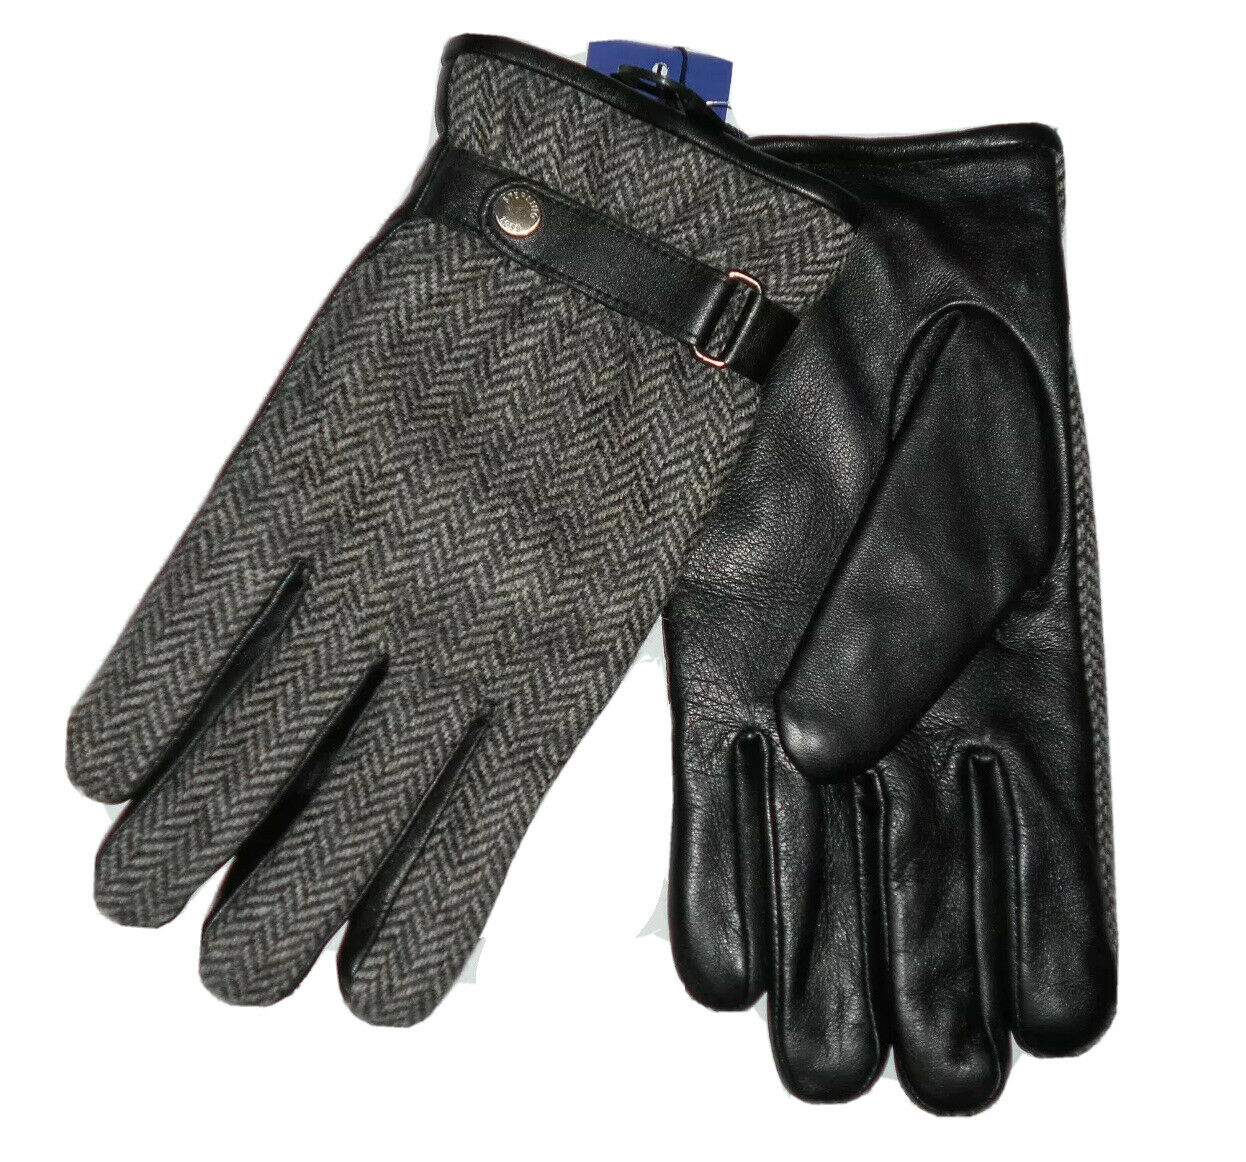 Sterling Abraham Moon men's Black Leather & wool Gloves size XL retail